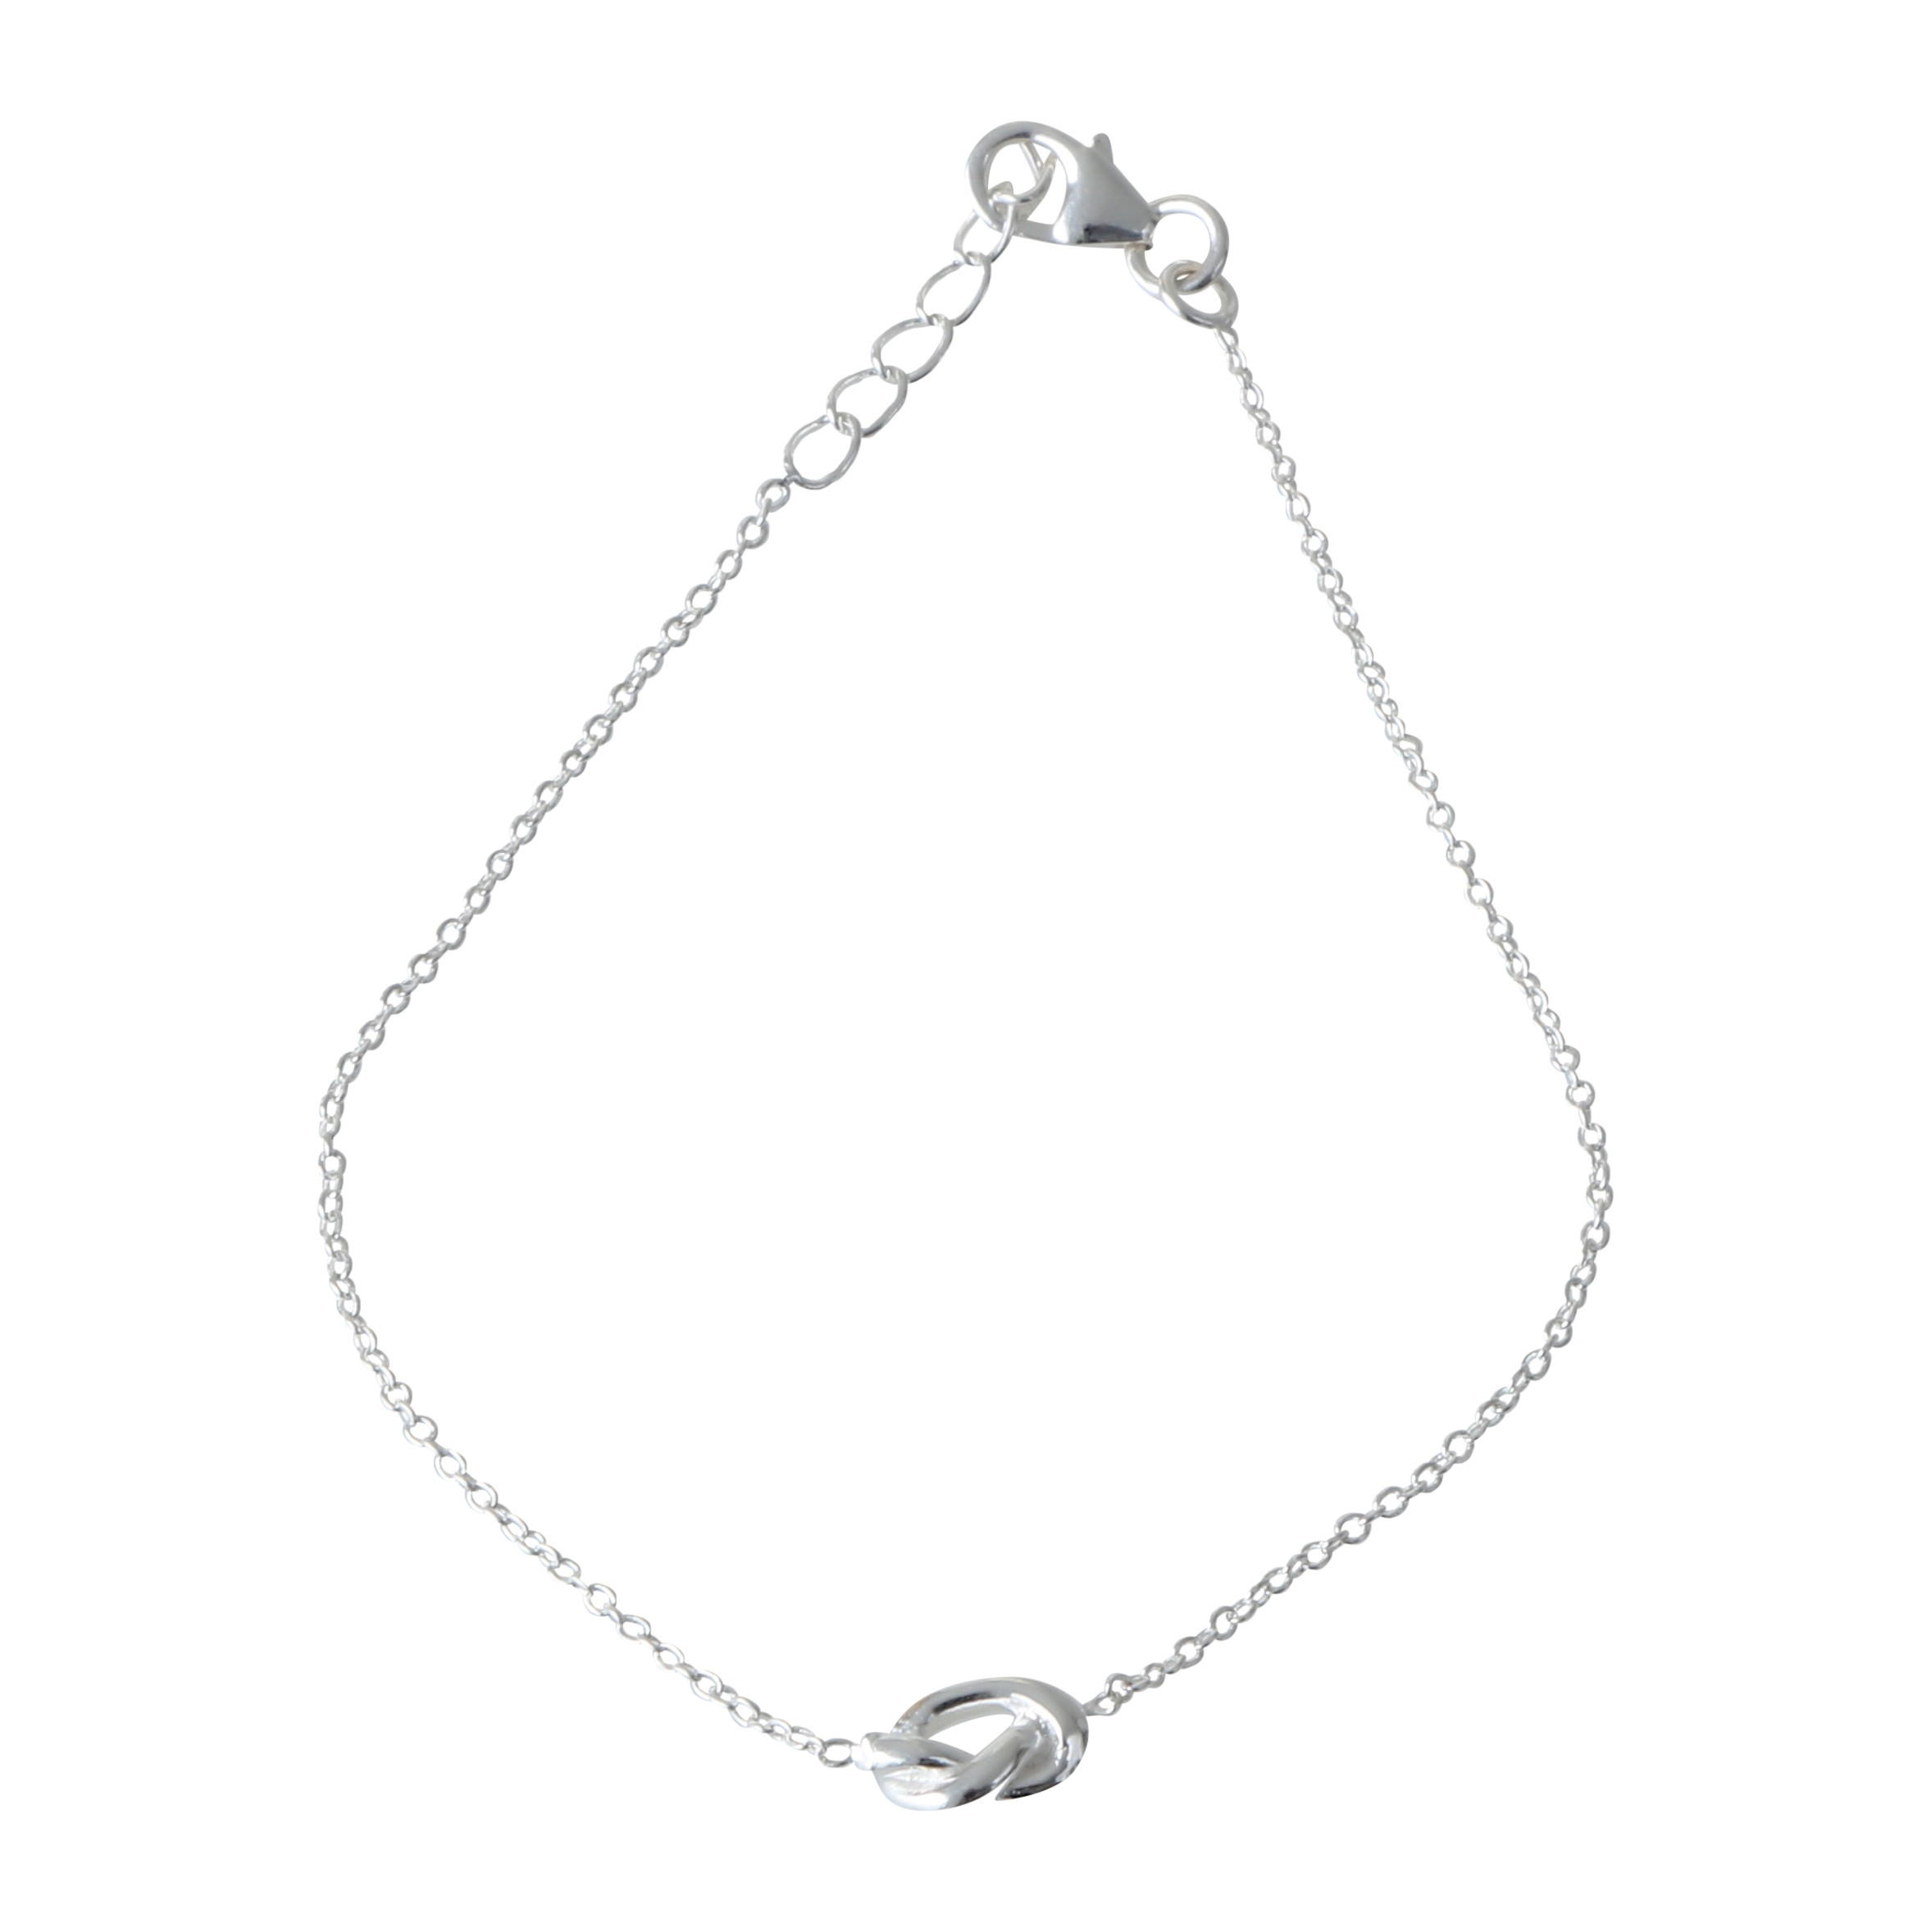 2355x2356 And Elegant Bracelet In 925 Sterling Silver With A Love Knot Symbol